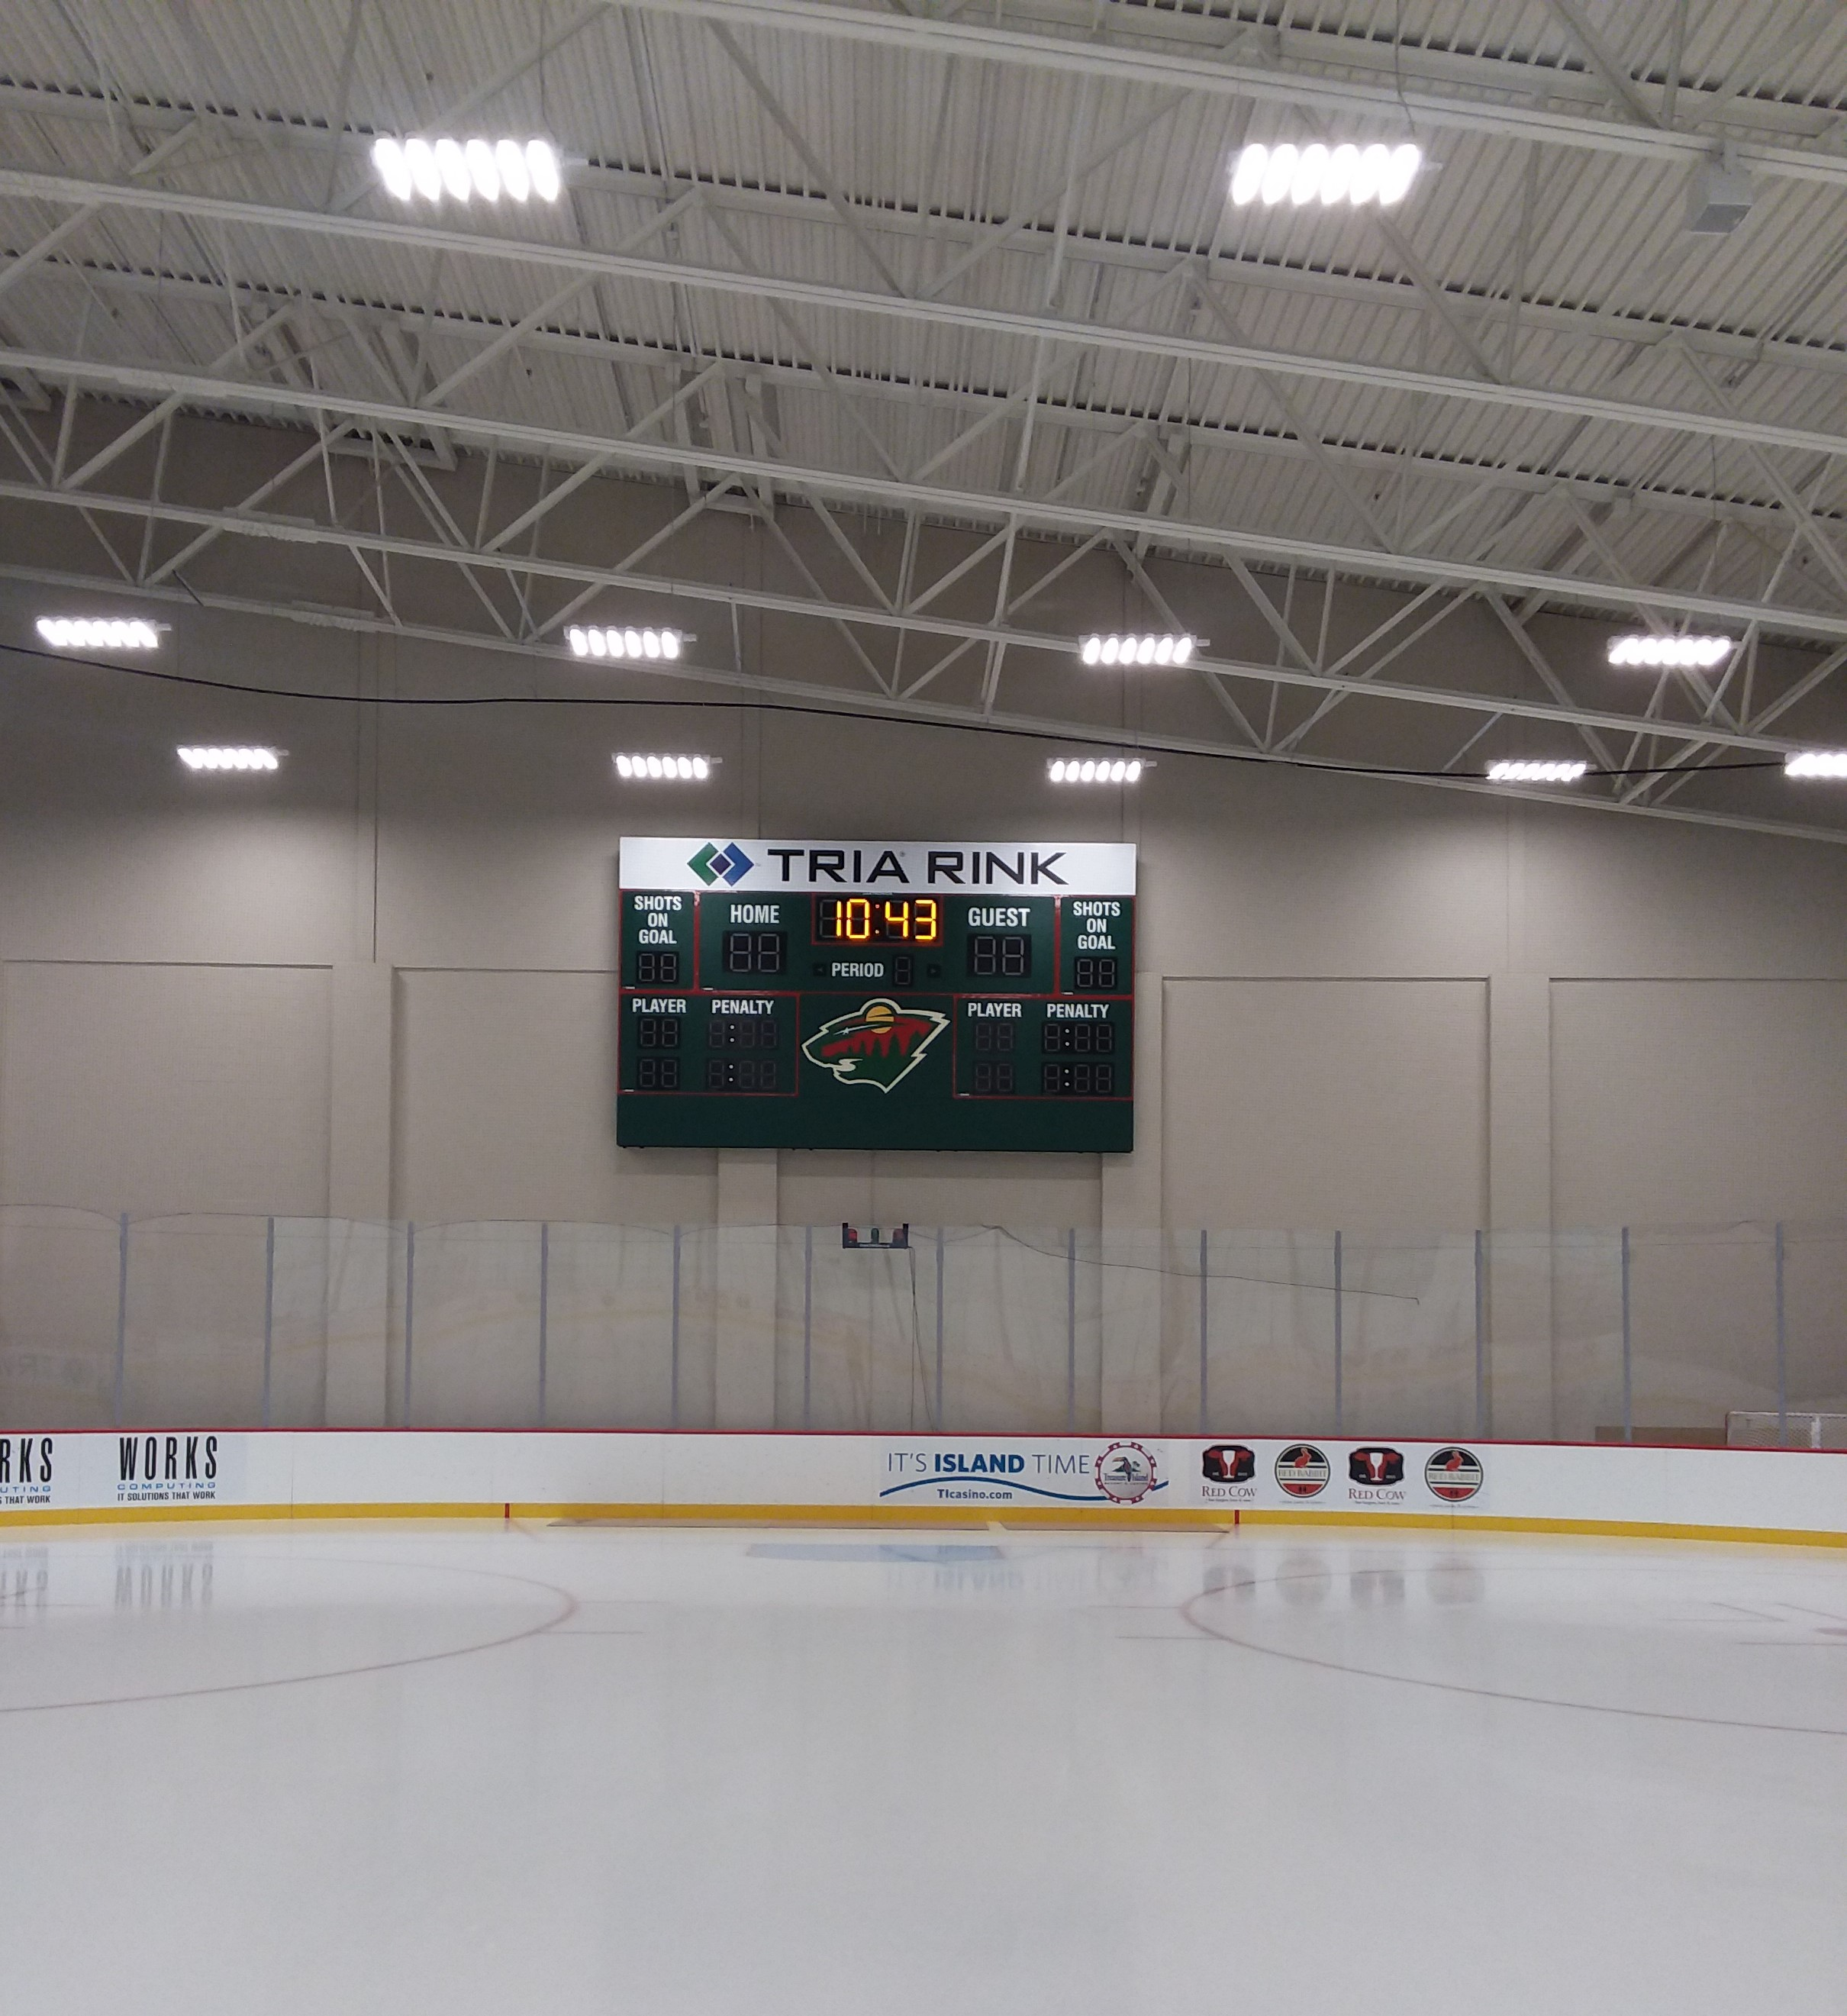 Hockey rink score sign